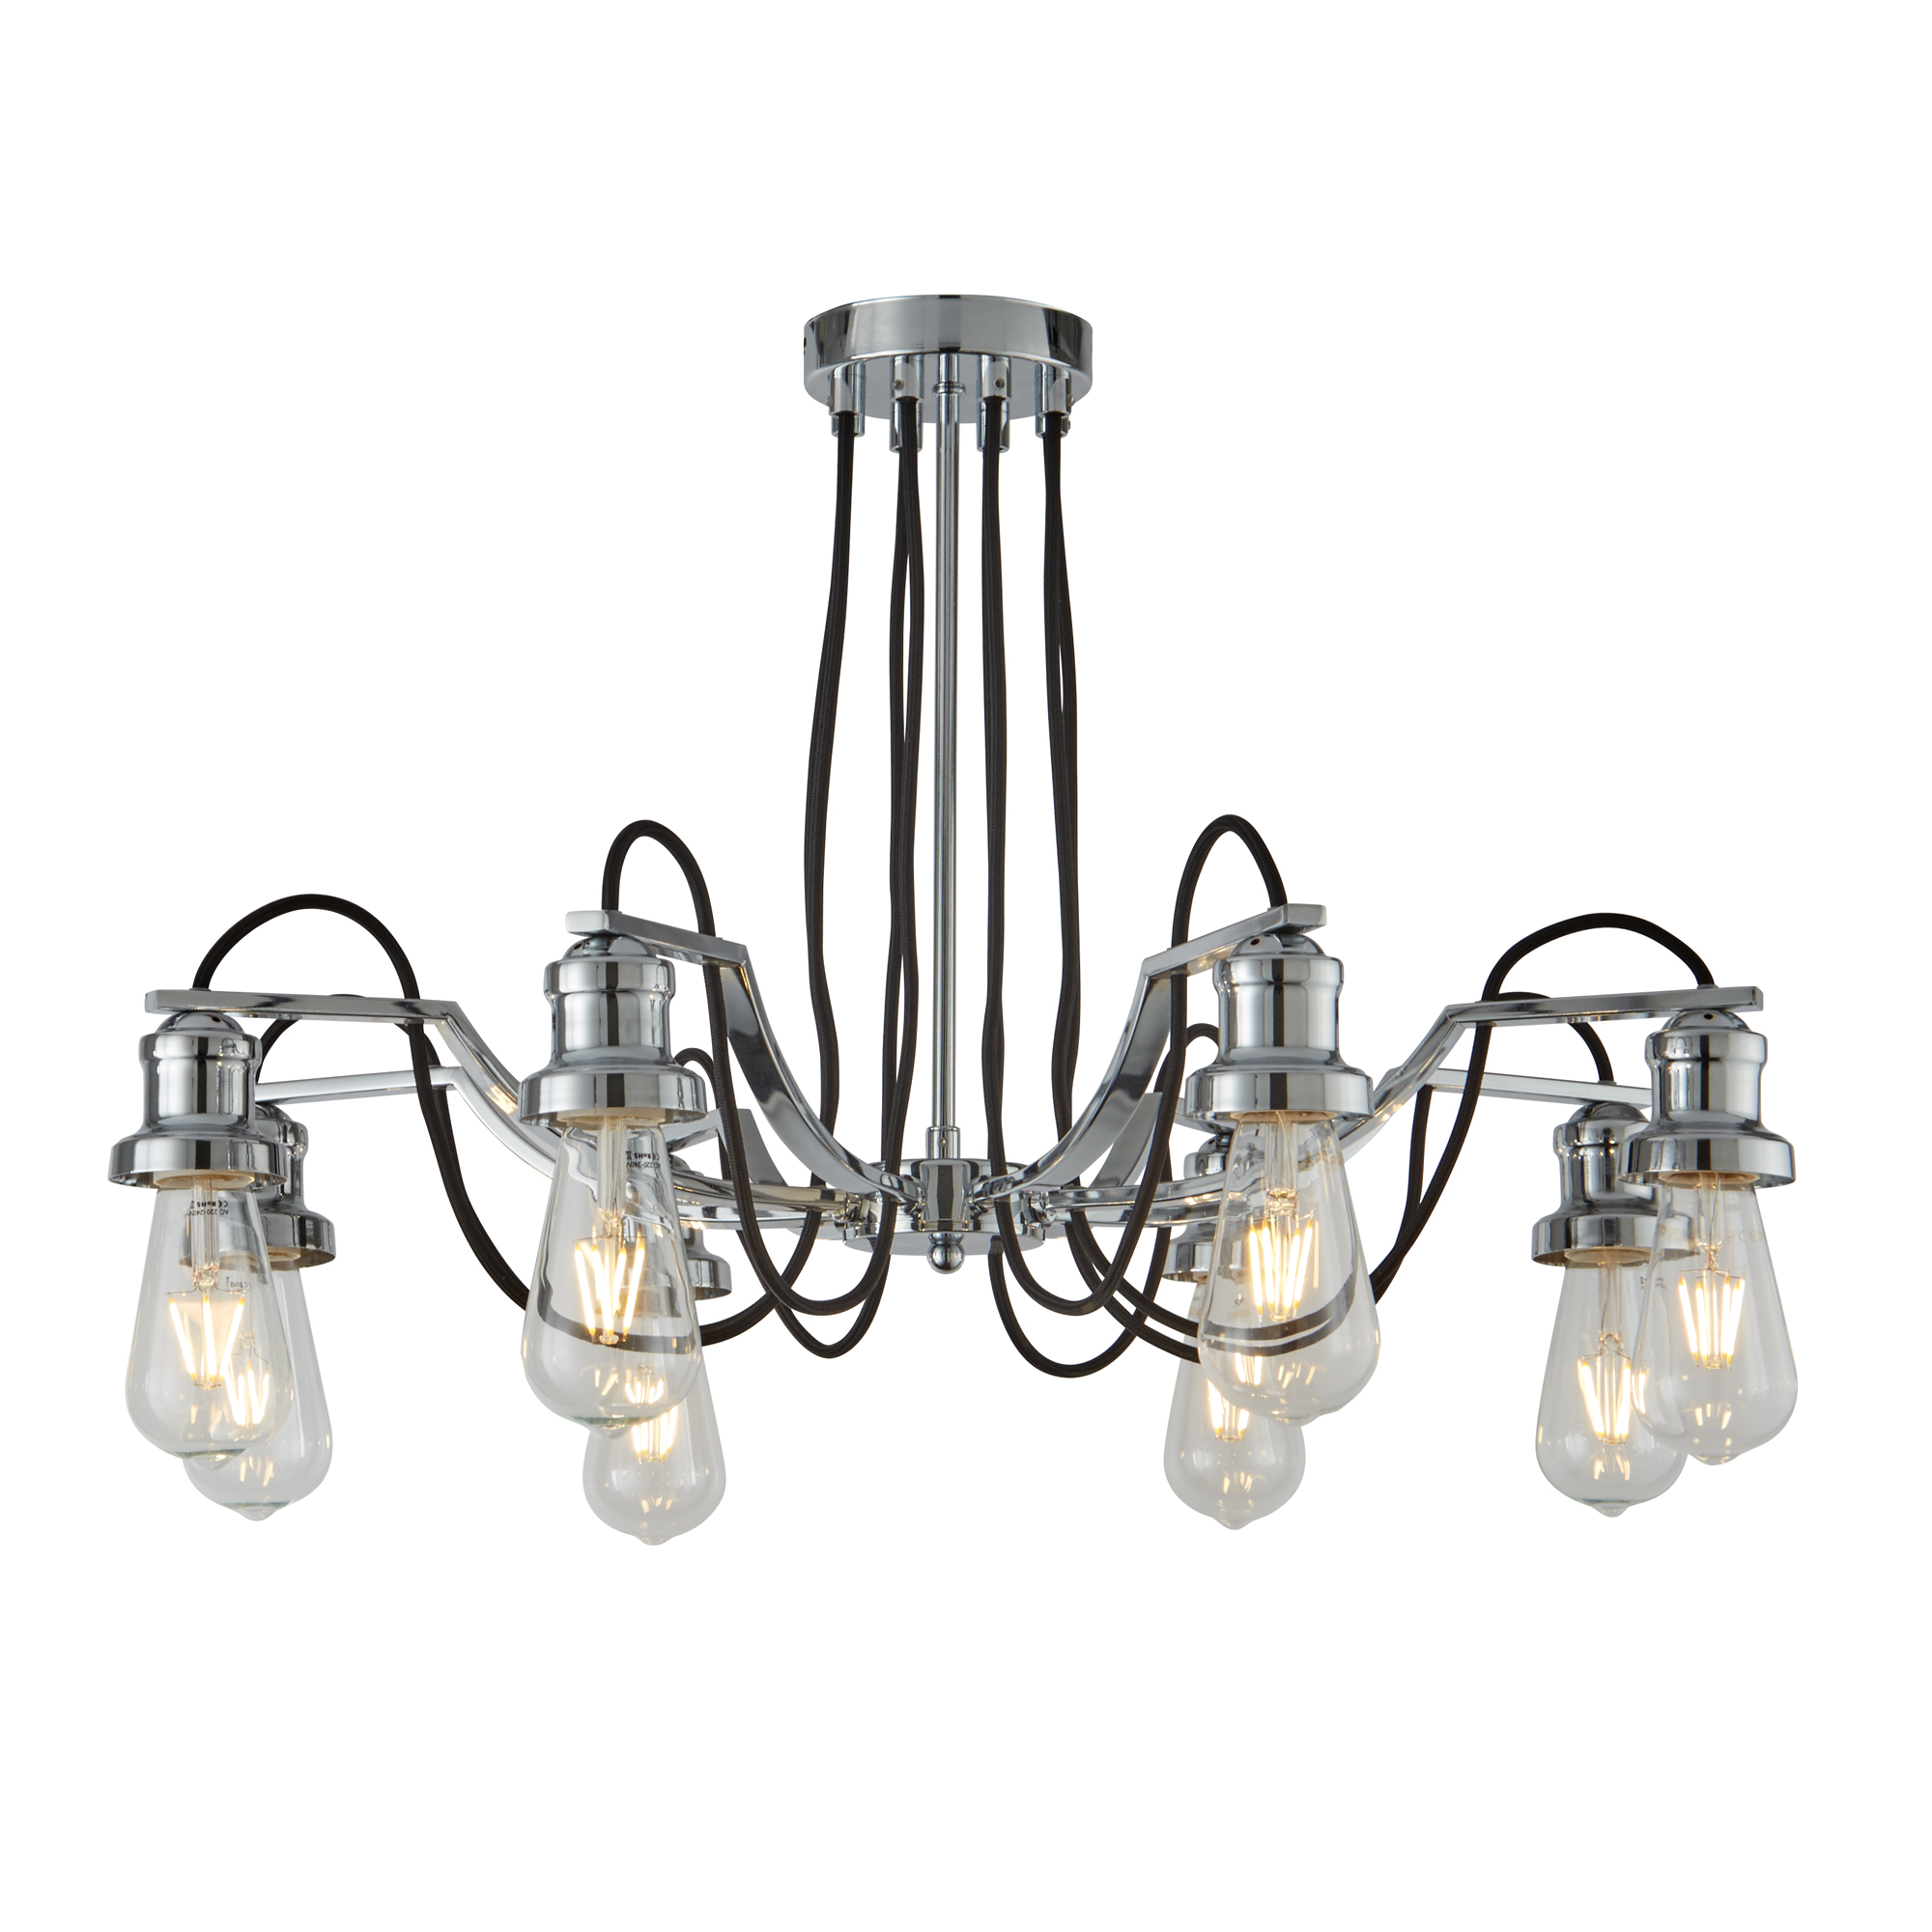 Searchlight 1068-8CC OLIVIA 8 LIGHT CEILING, BLACK BRAIDED